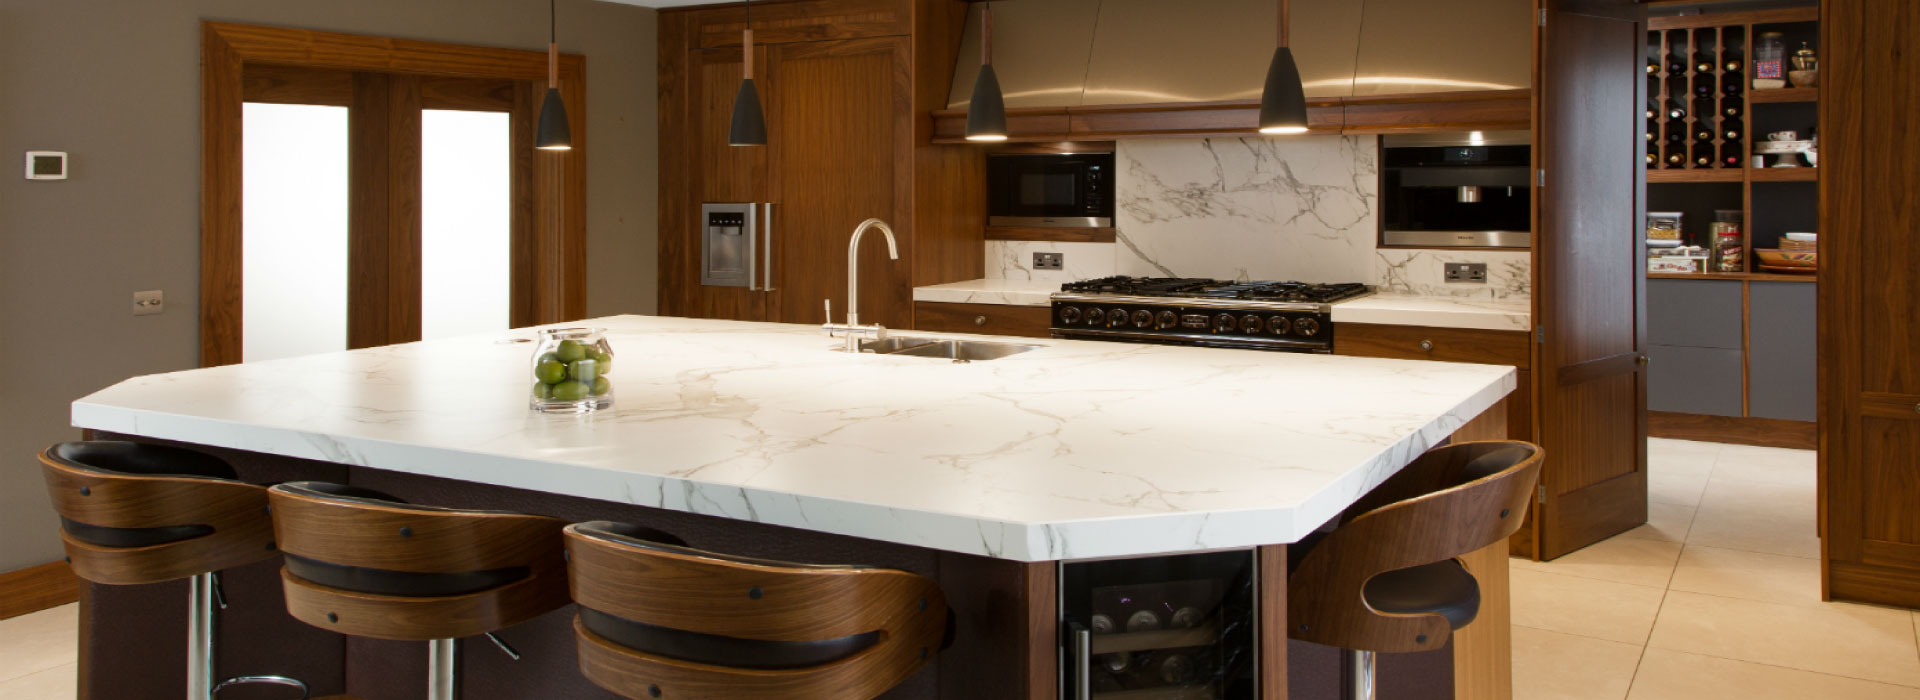 Callum Walker Kitchens | Interior Design Scotland